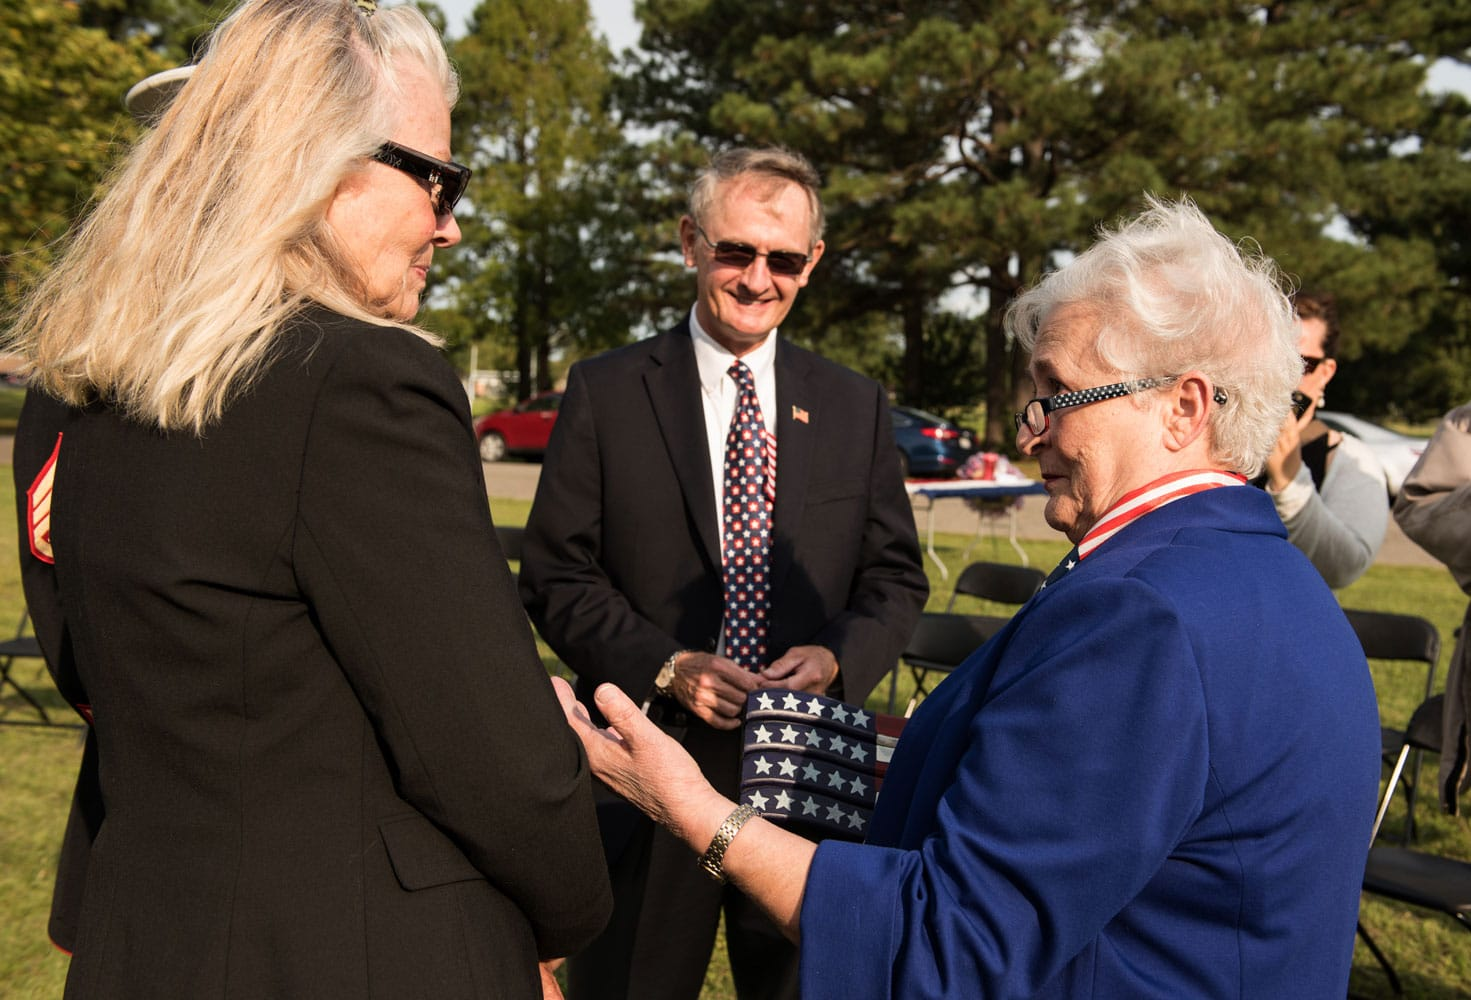 """The Honorable Angela Lee Leary, right, presents Claudia Johnson, Gold Star mother, a crafted flag during """"The Reading of The Names"""" at Gosnolds Hope Park, Hampton, Va., Sept. 11, 2017. Johnson's son United States Marine Corps 1st Lt. Michael Johnson, was killed Sept. 8, 2009 in the Kunar Province, Afghanistan."""